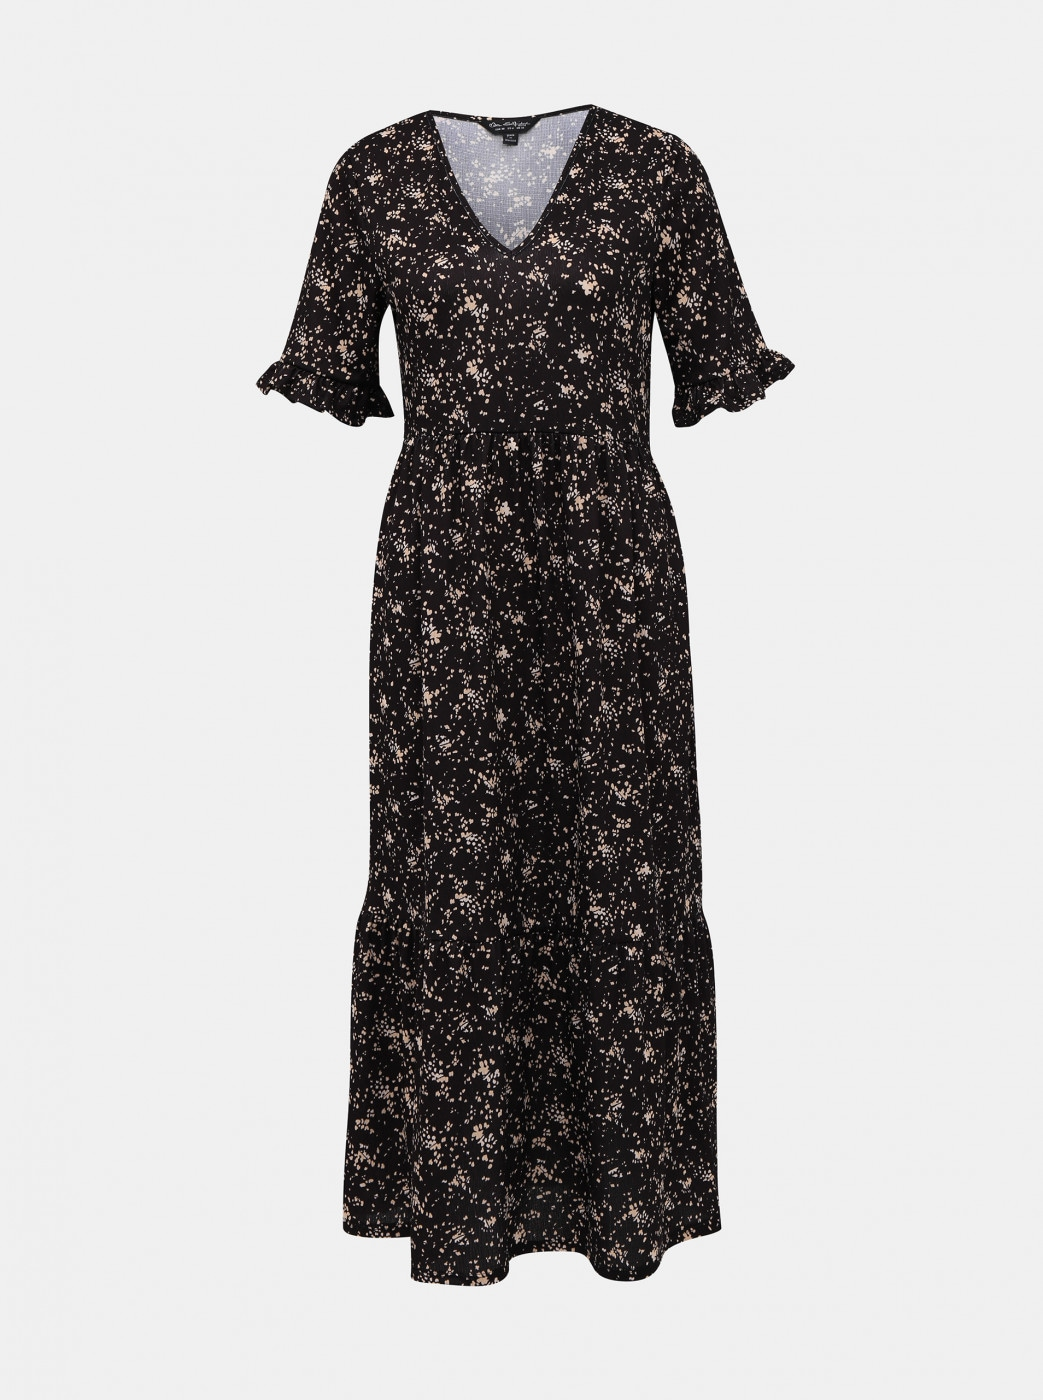 Miss Selfridge's Black Patterned Maxi Dress